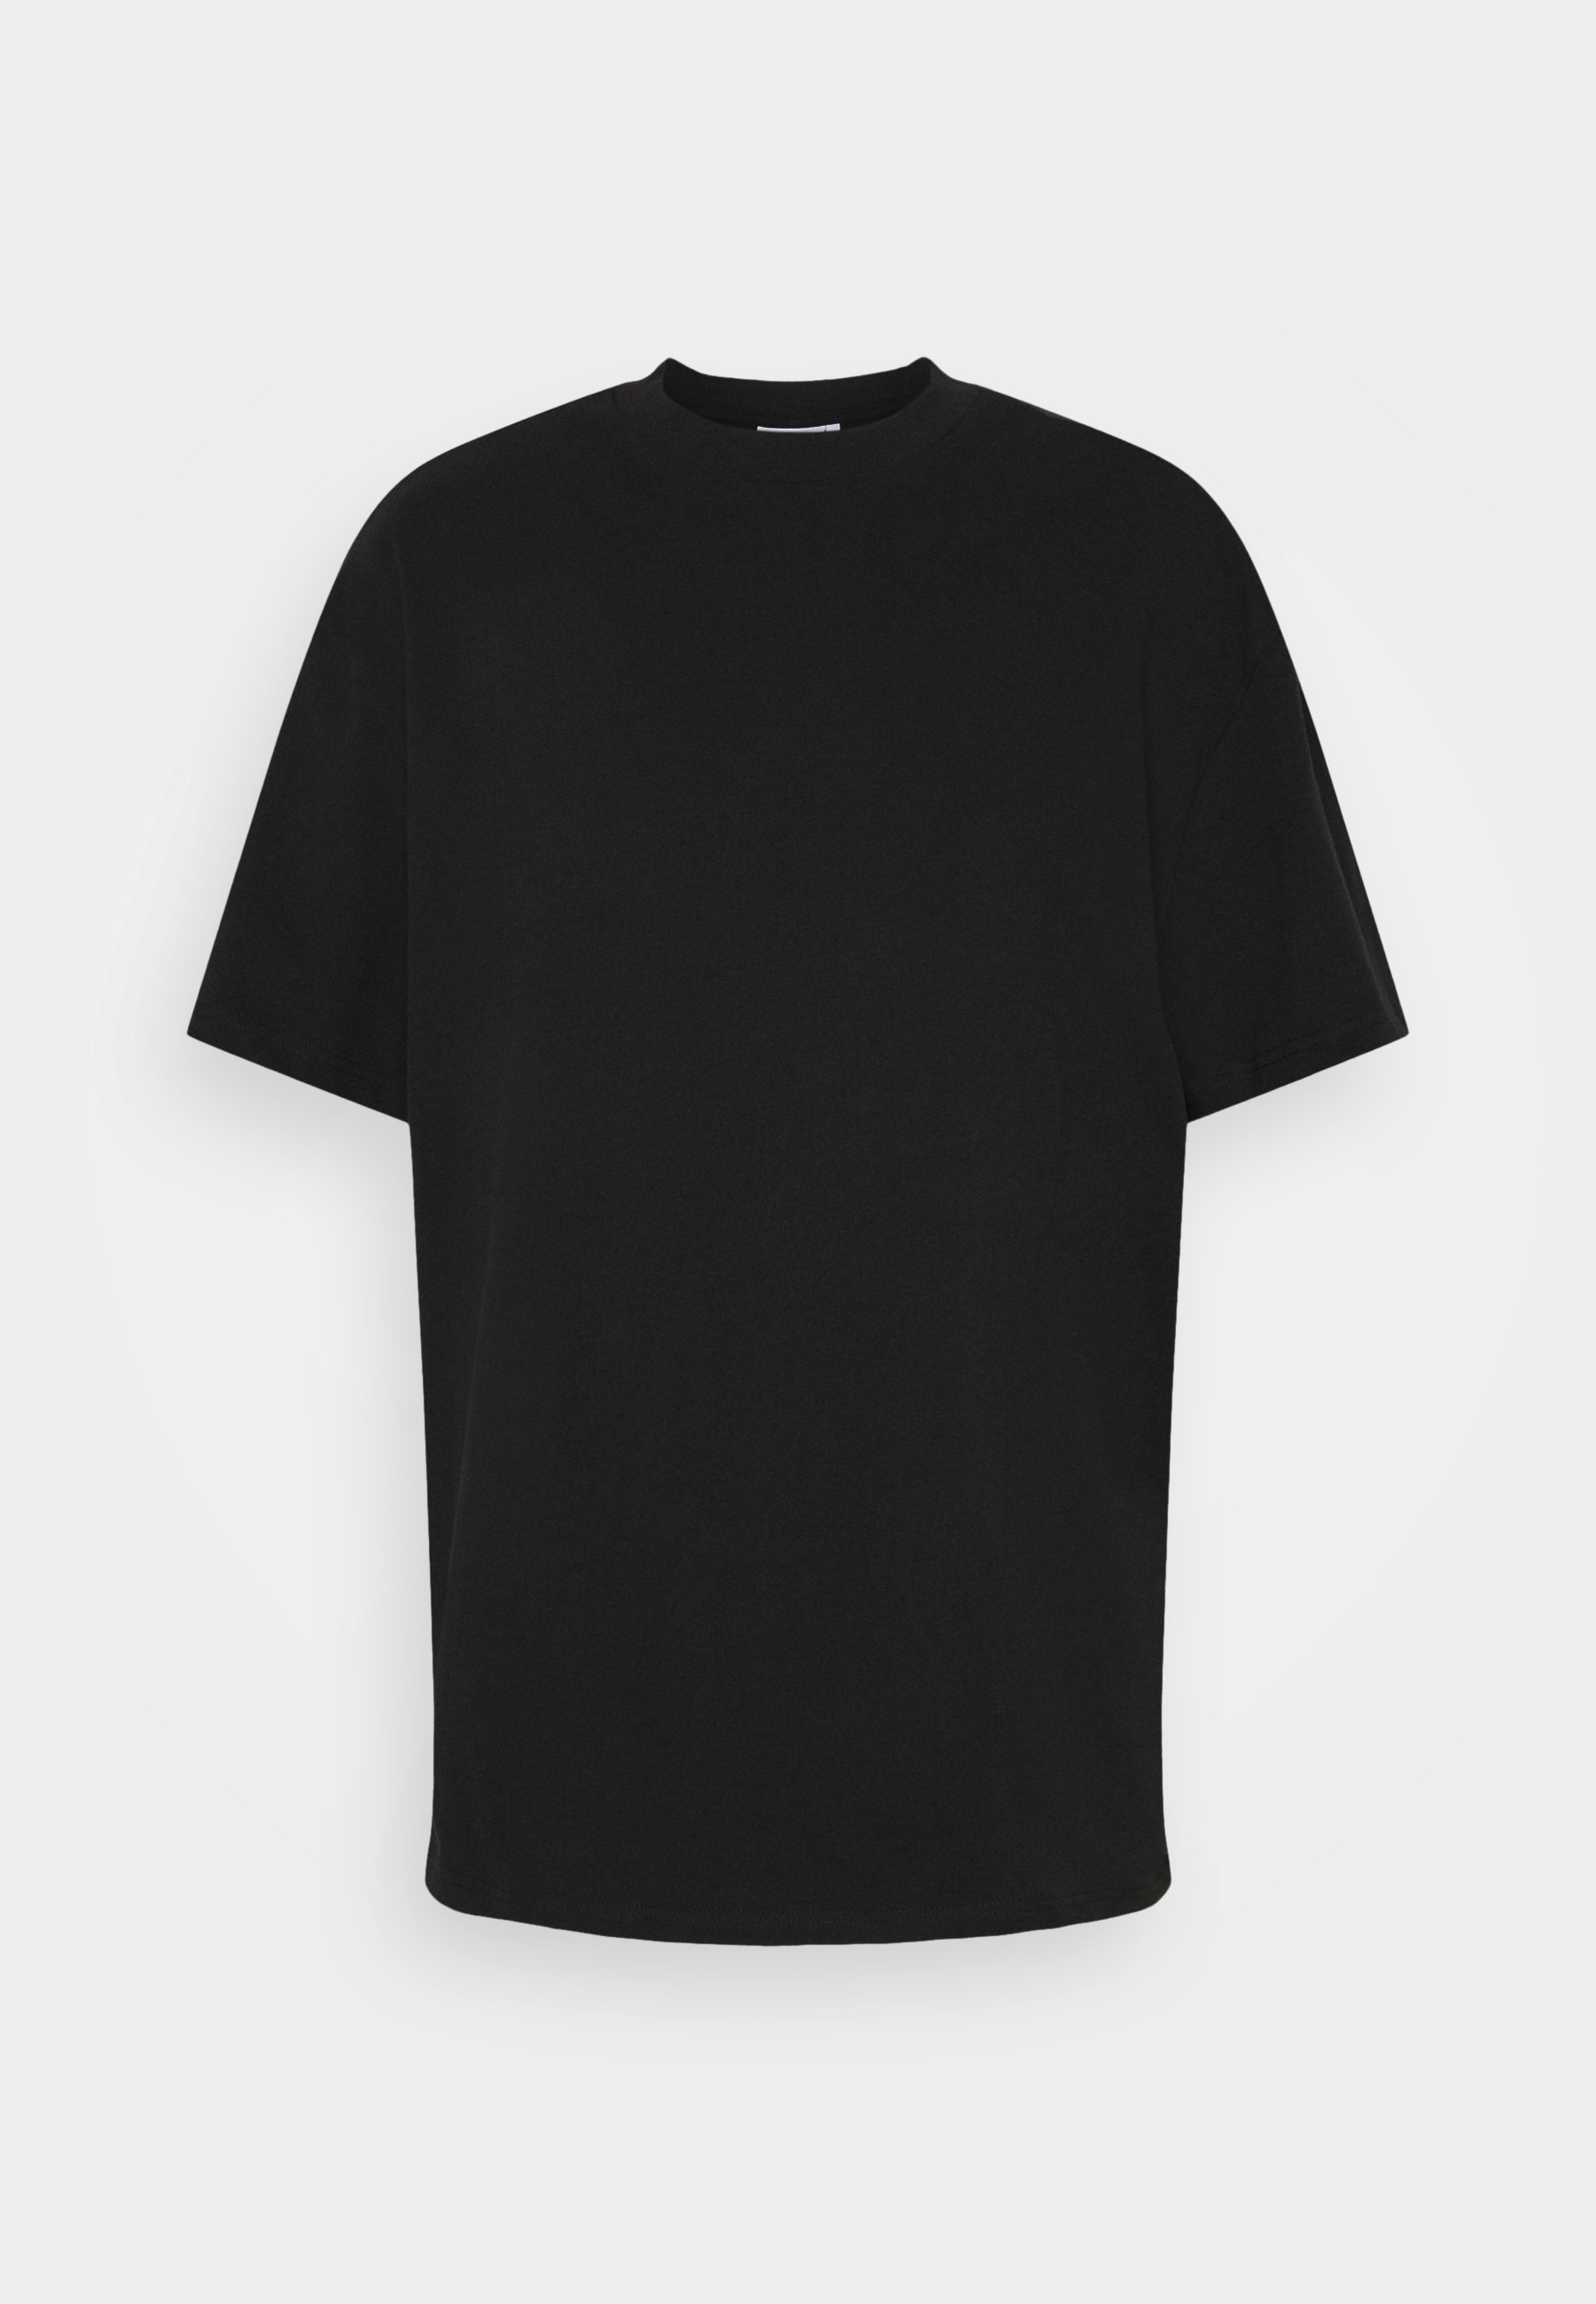 Weekday Great - T-shirts Black/svart